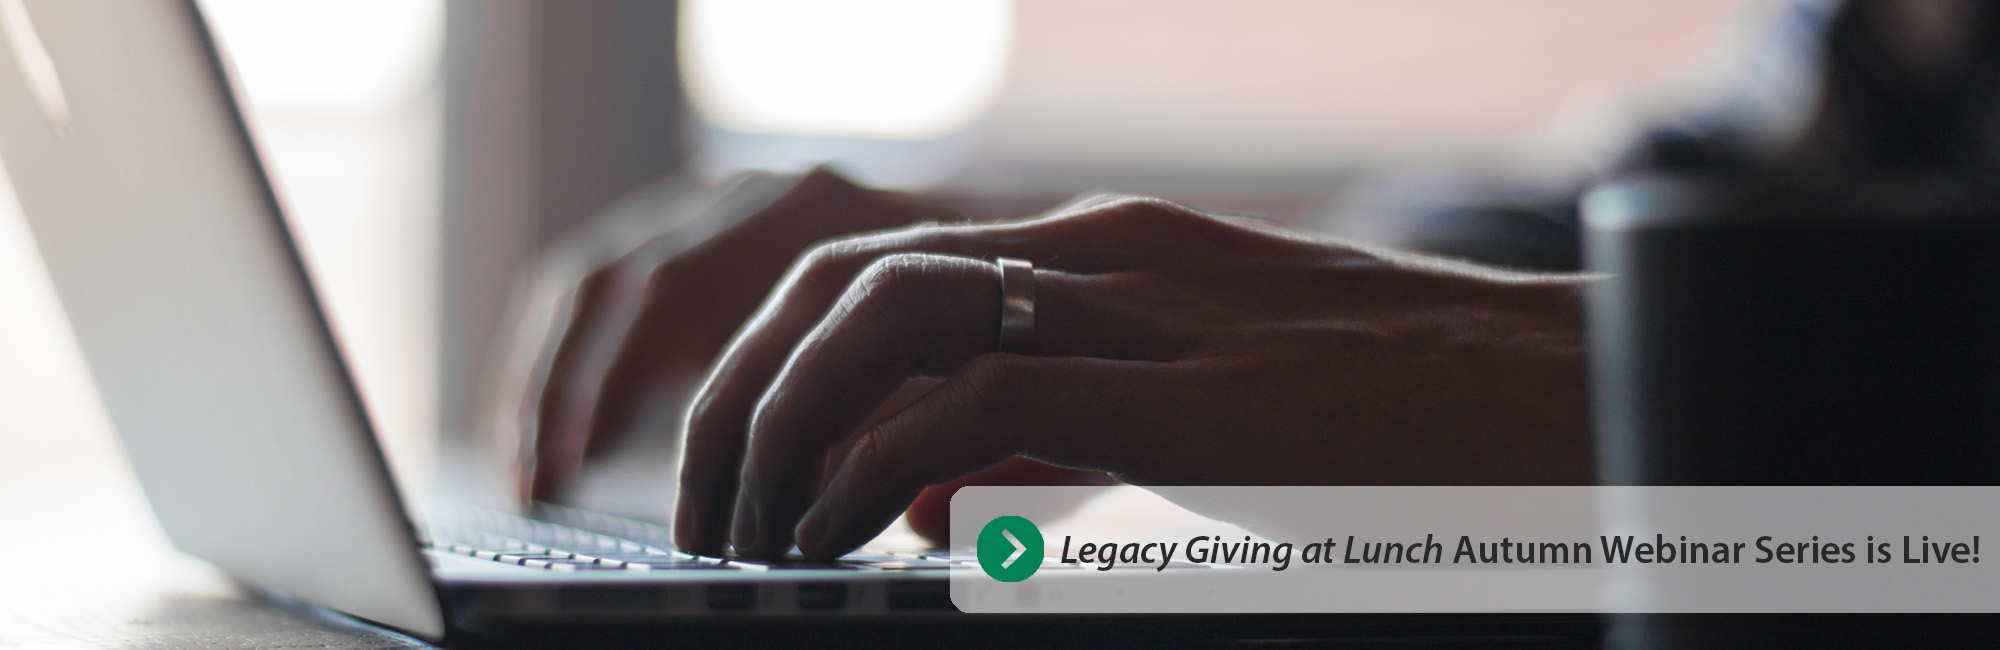 Legacy Giving at Lunch Autumn Webinar Series